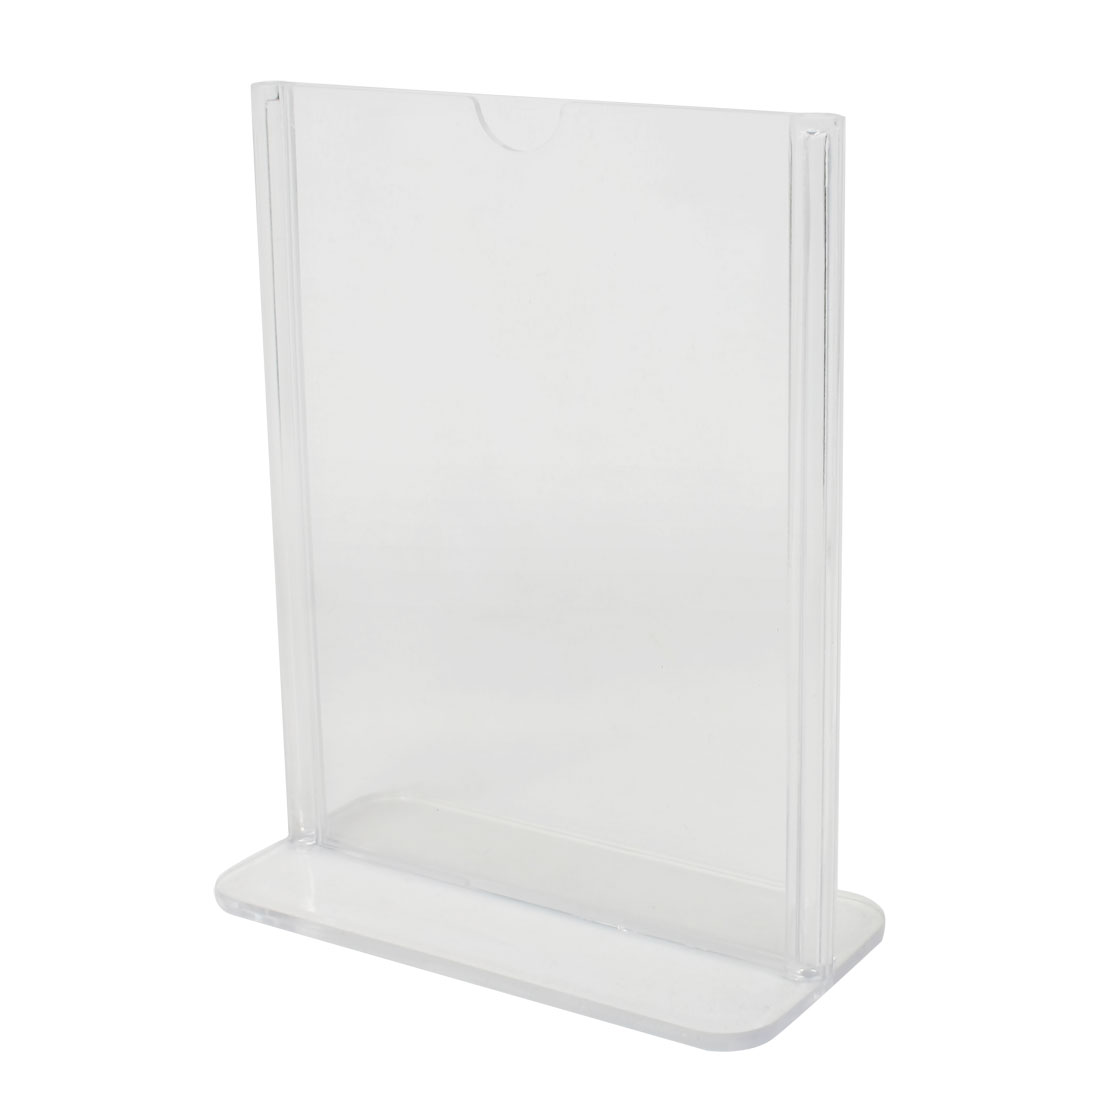 Clear Plastic 10.5 x 15cm Standard Price Menu Display Holder